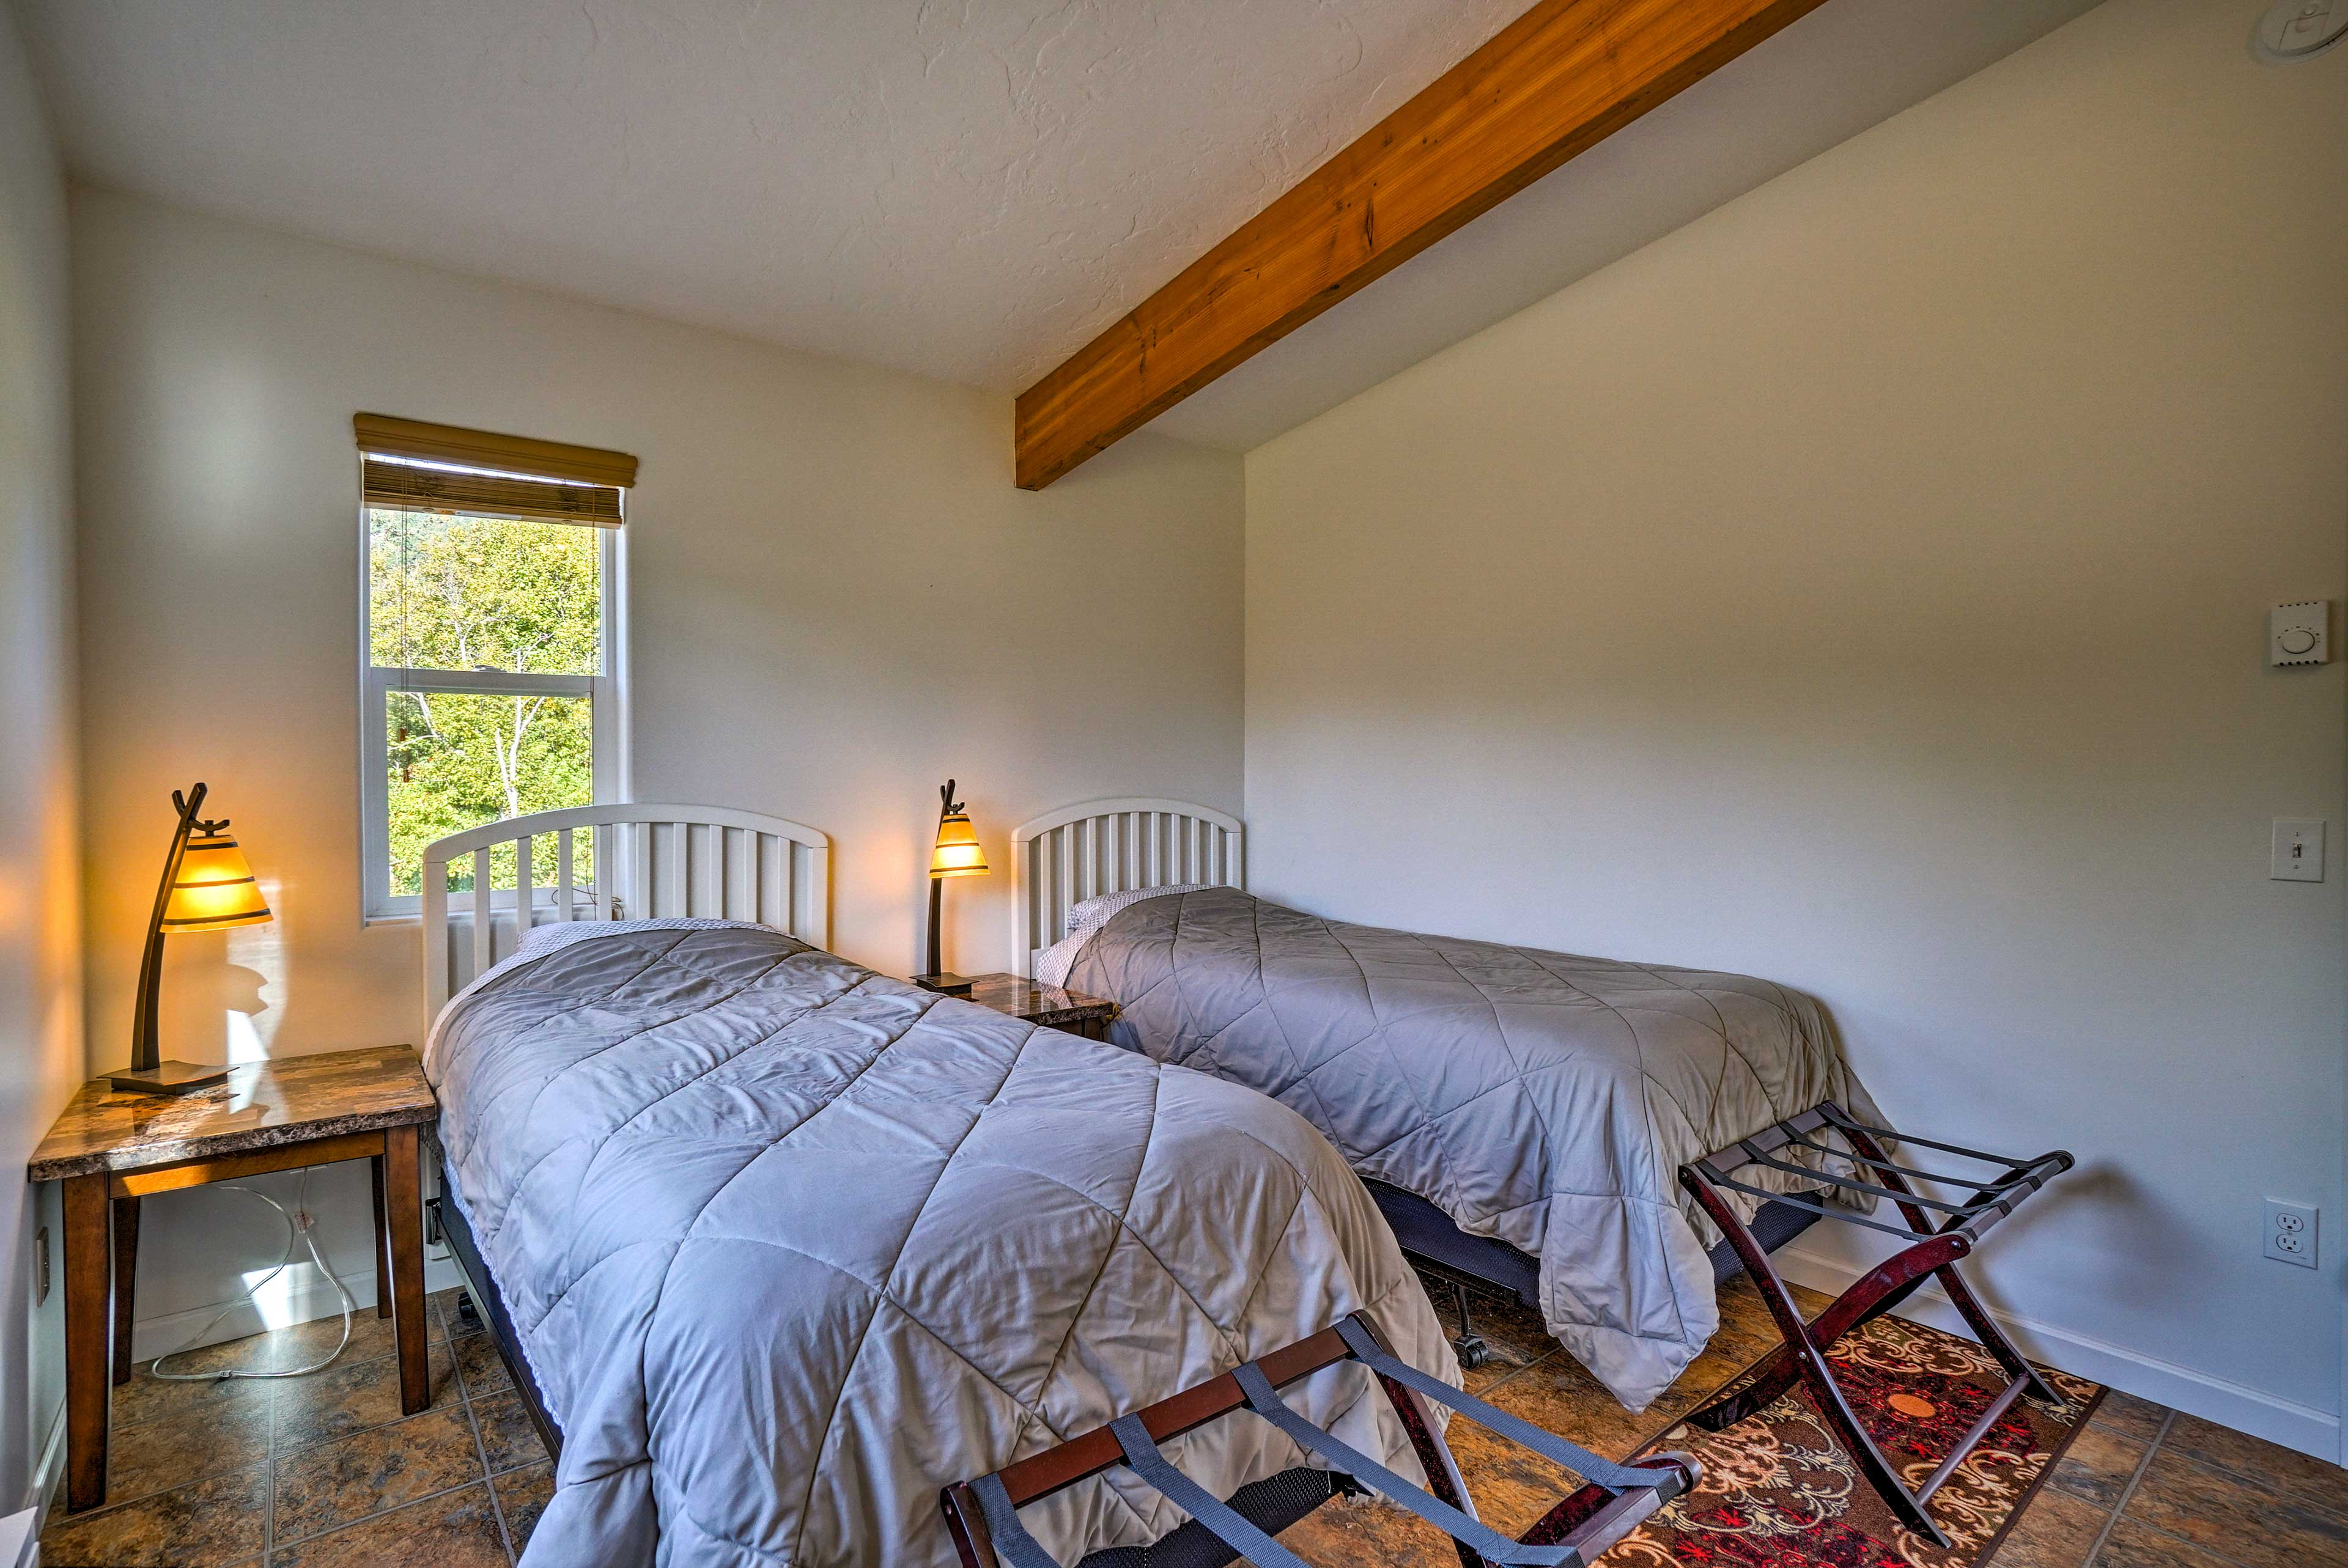 Dream of tomorrows adventures in the 2 twin beds.